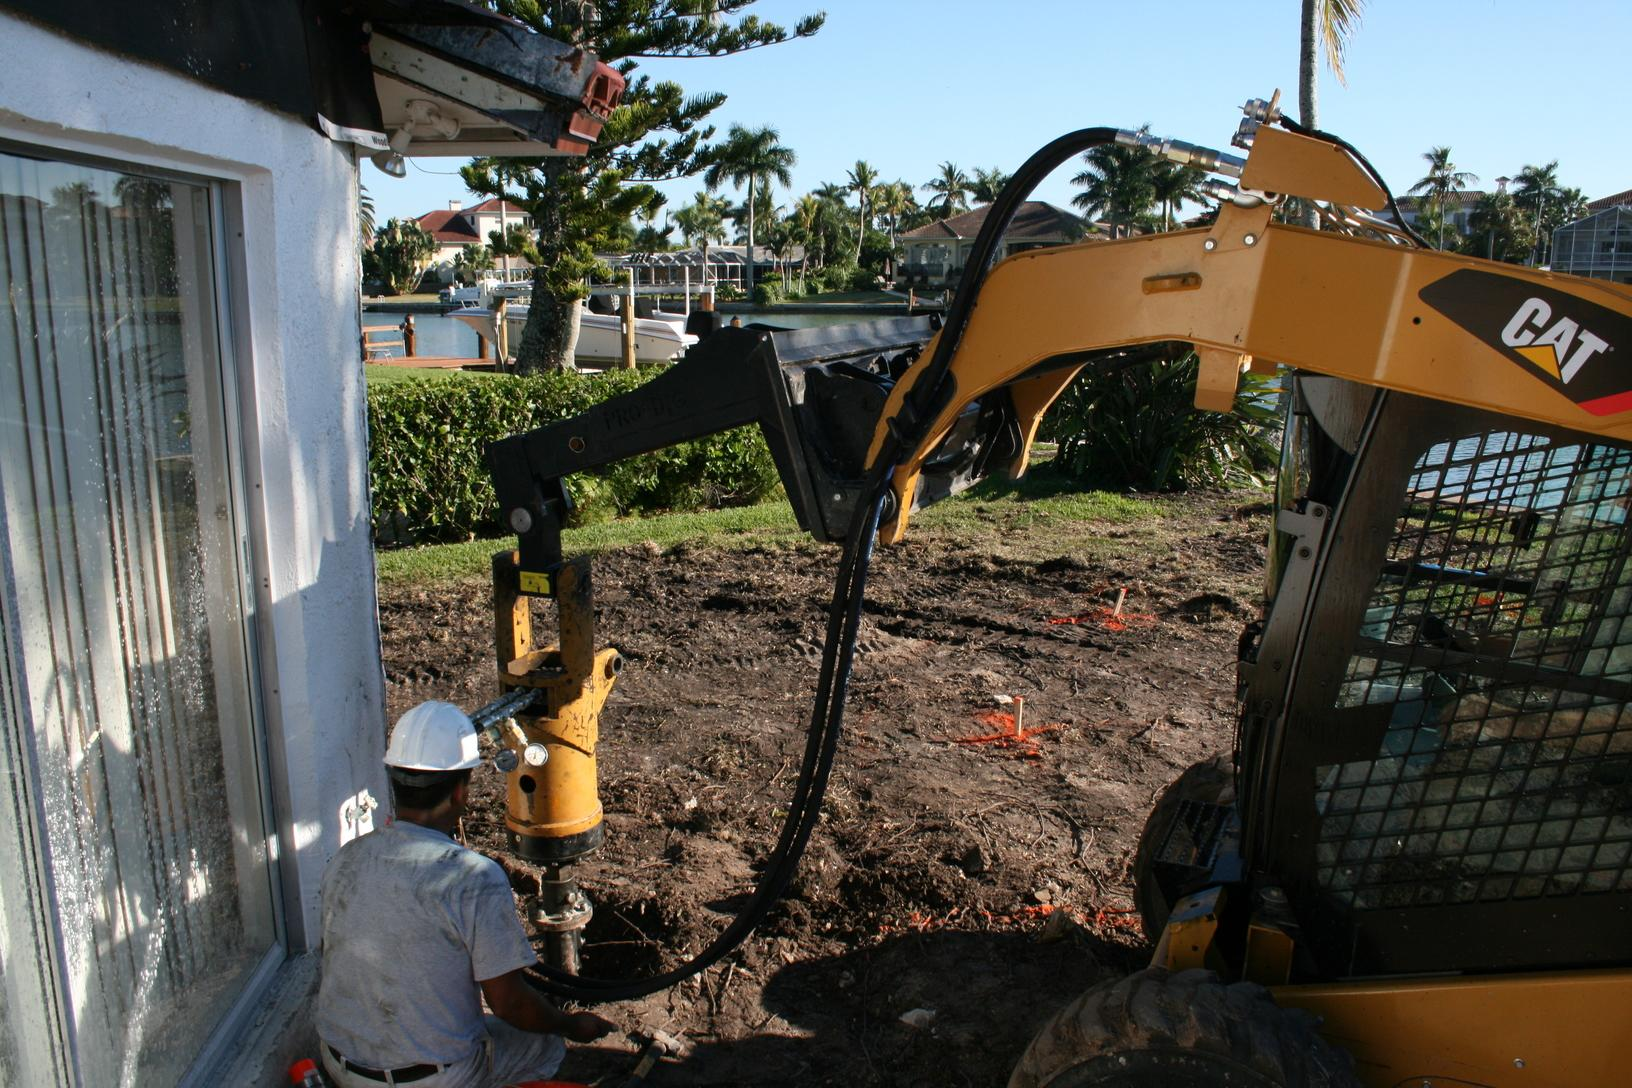 Installation adjacent to house with skidsteer